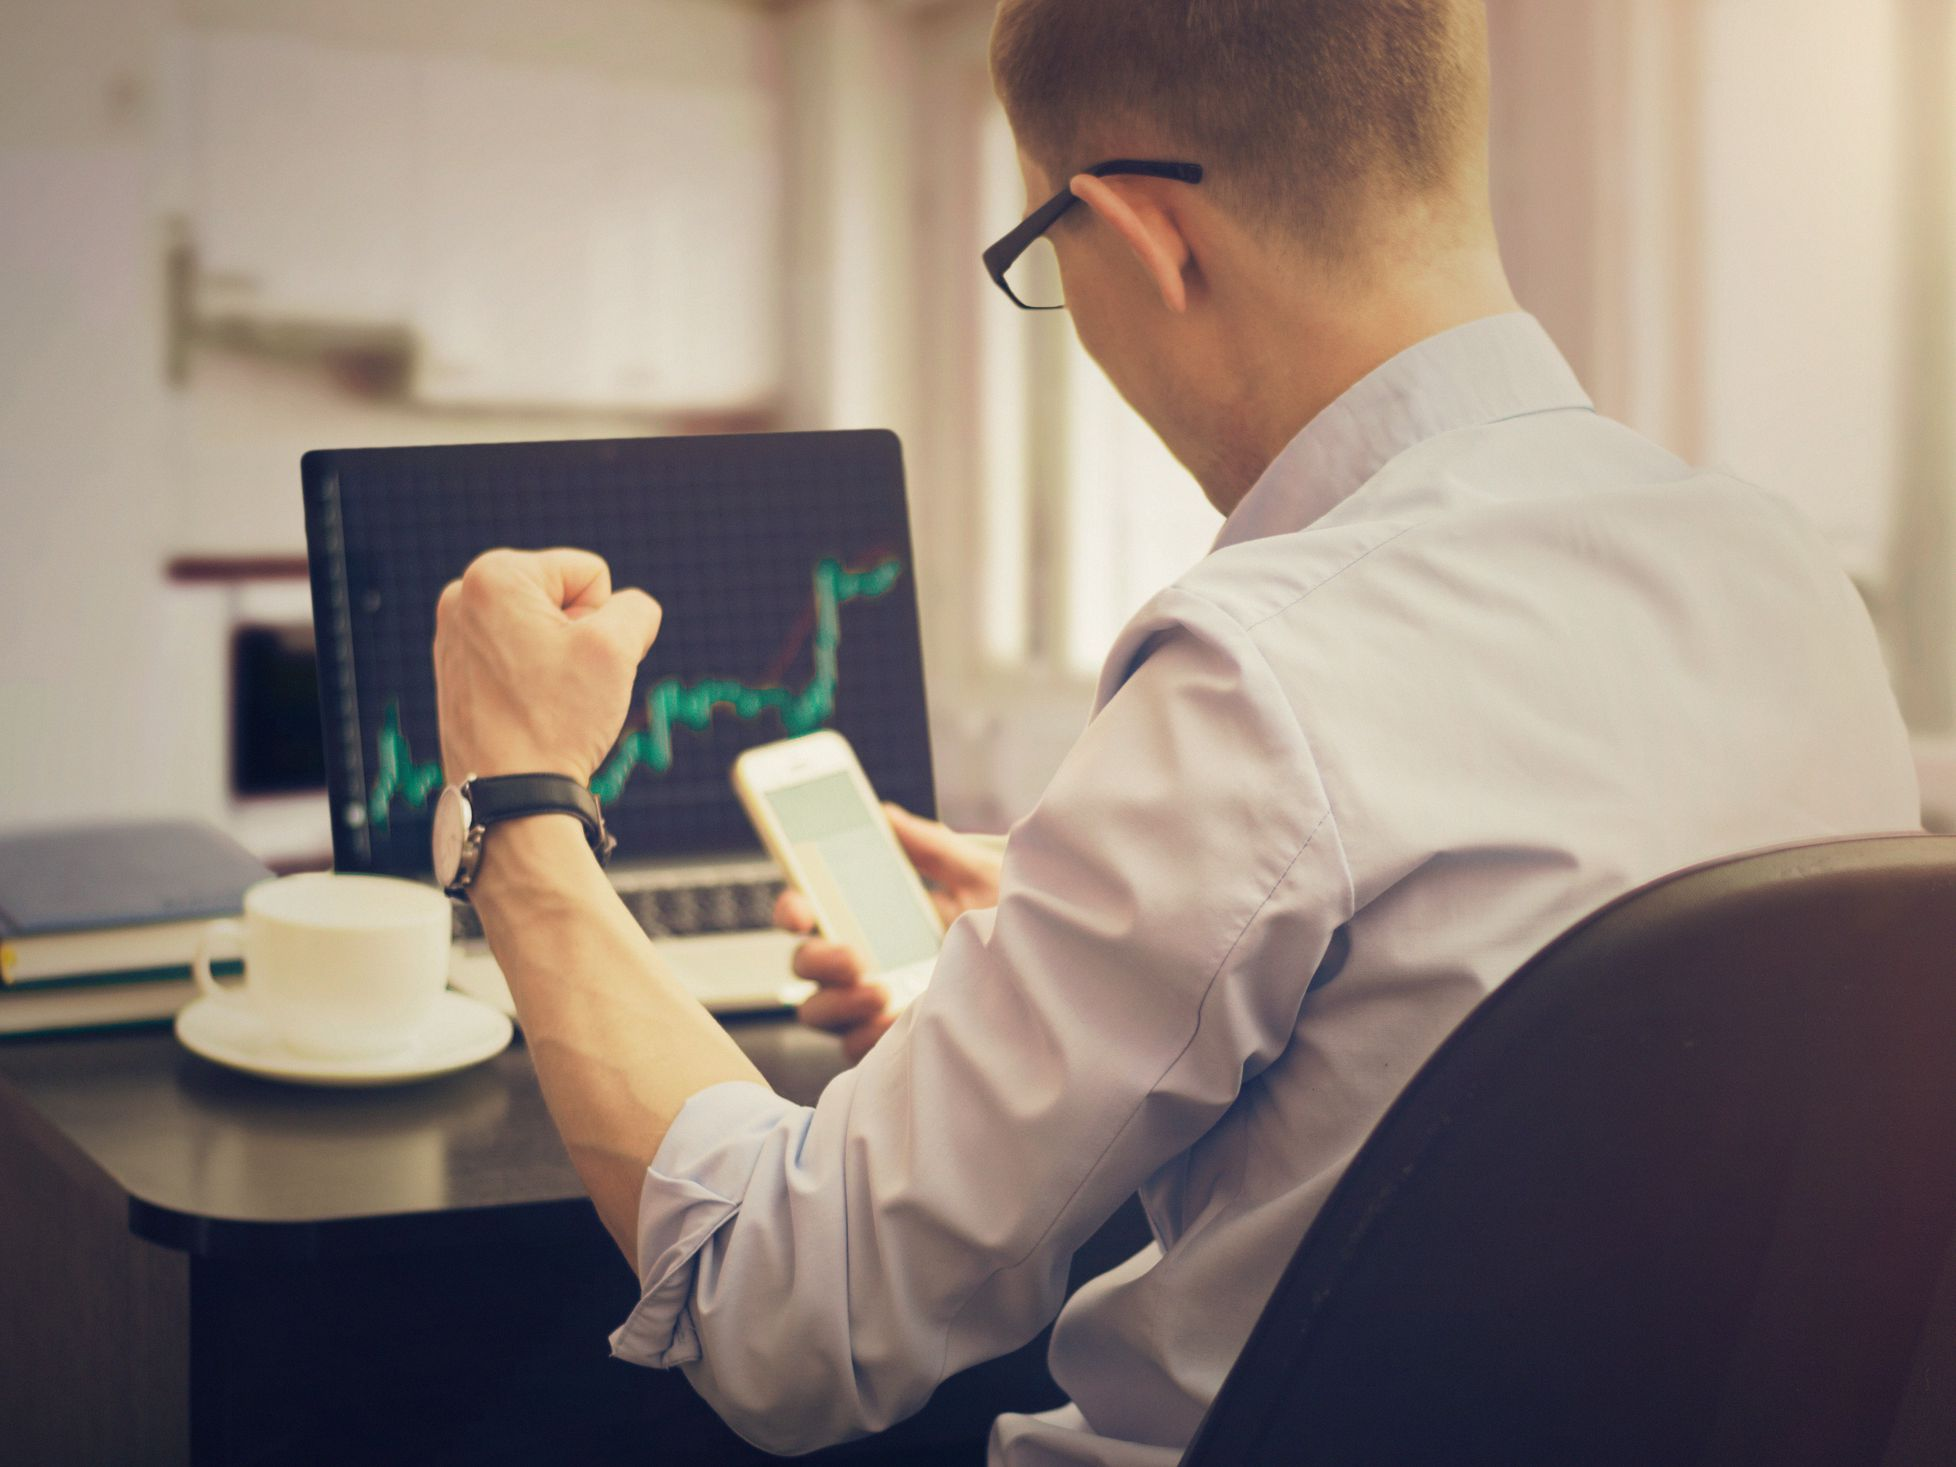 Practicing Day-Trading Risk-Free With a Simulator